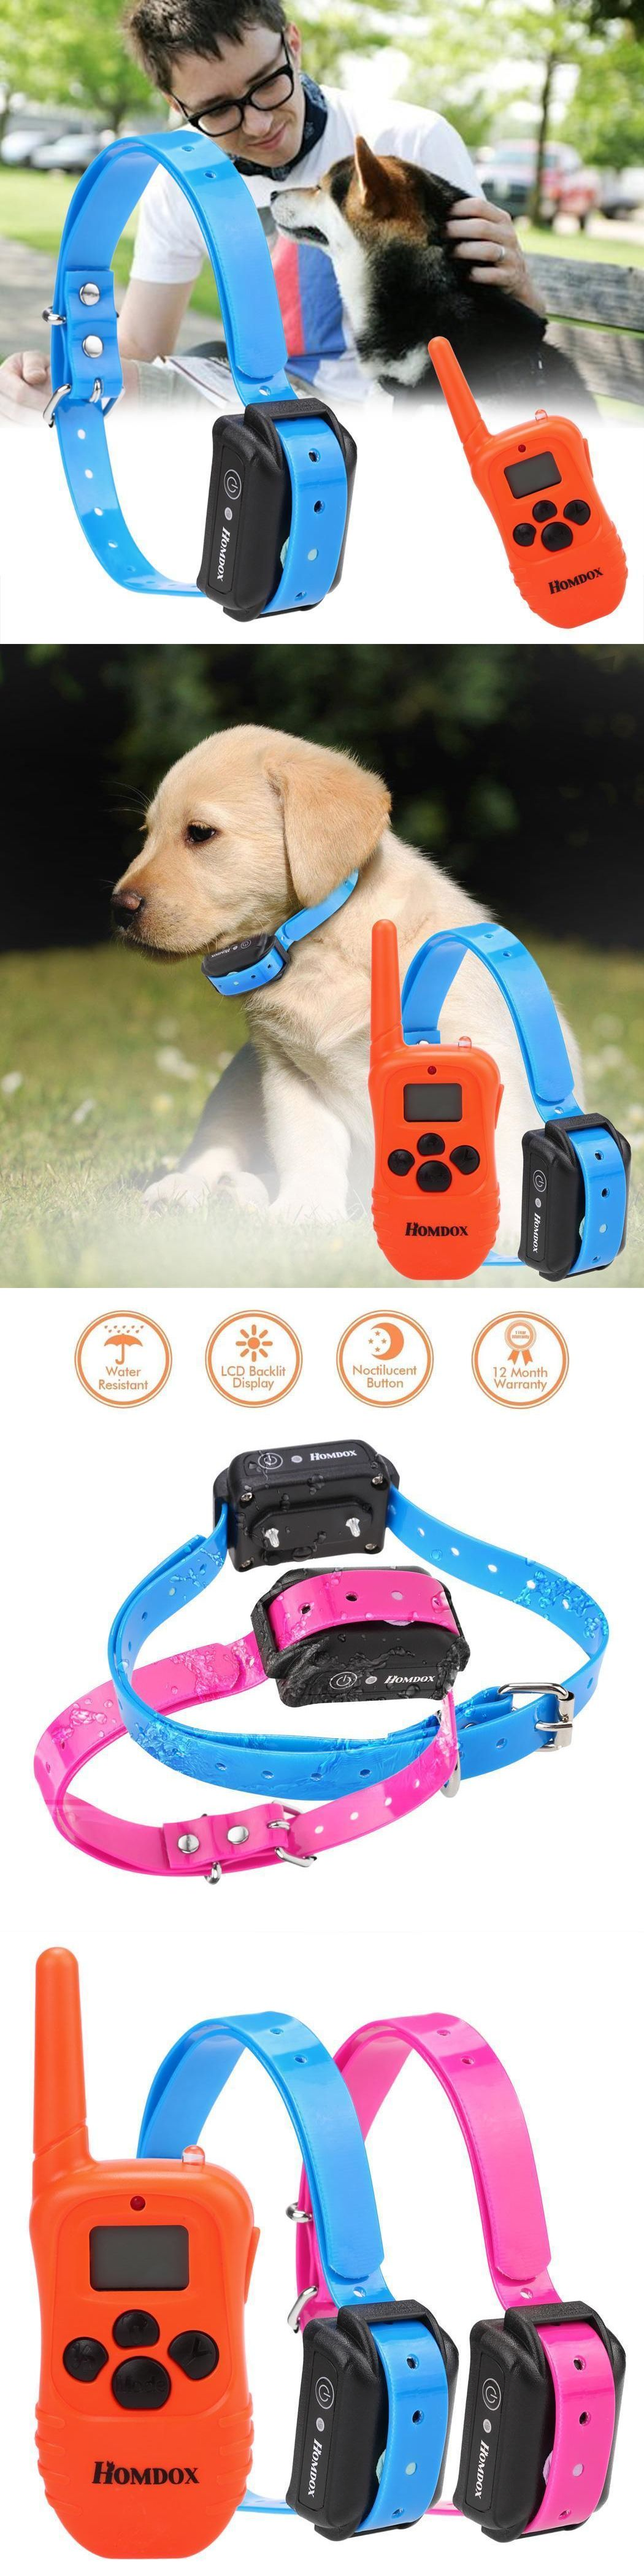 Clickers 100404 Dog Shock Collar With Remote Waterproof Electric